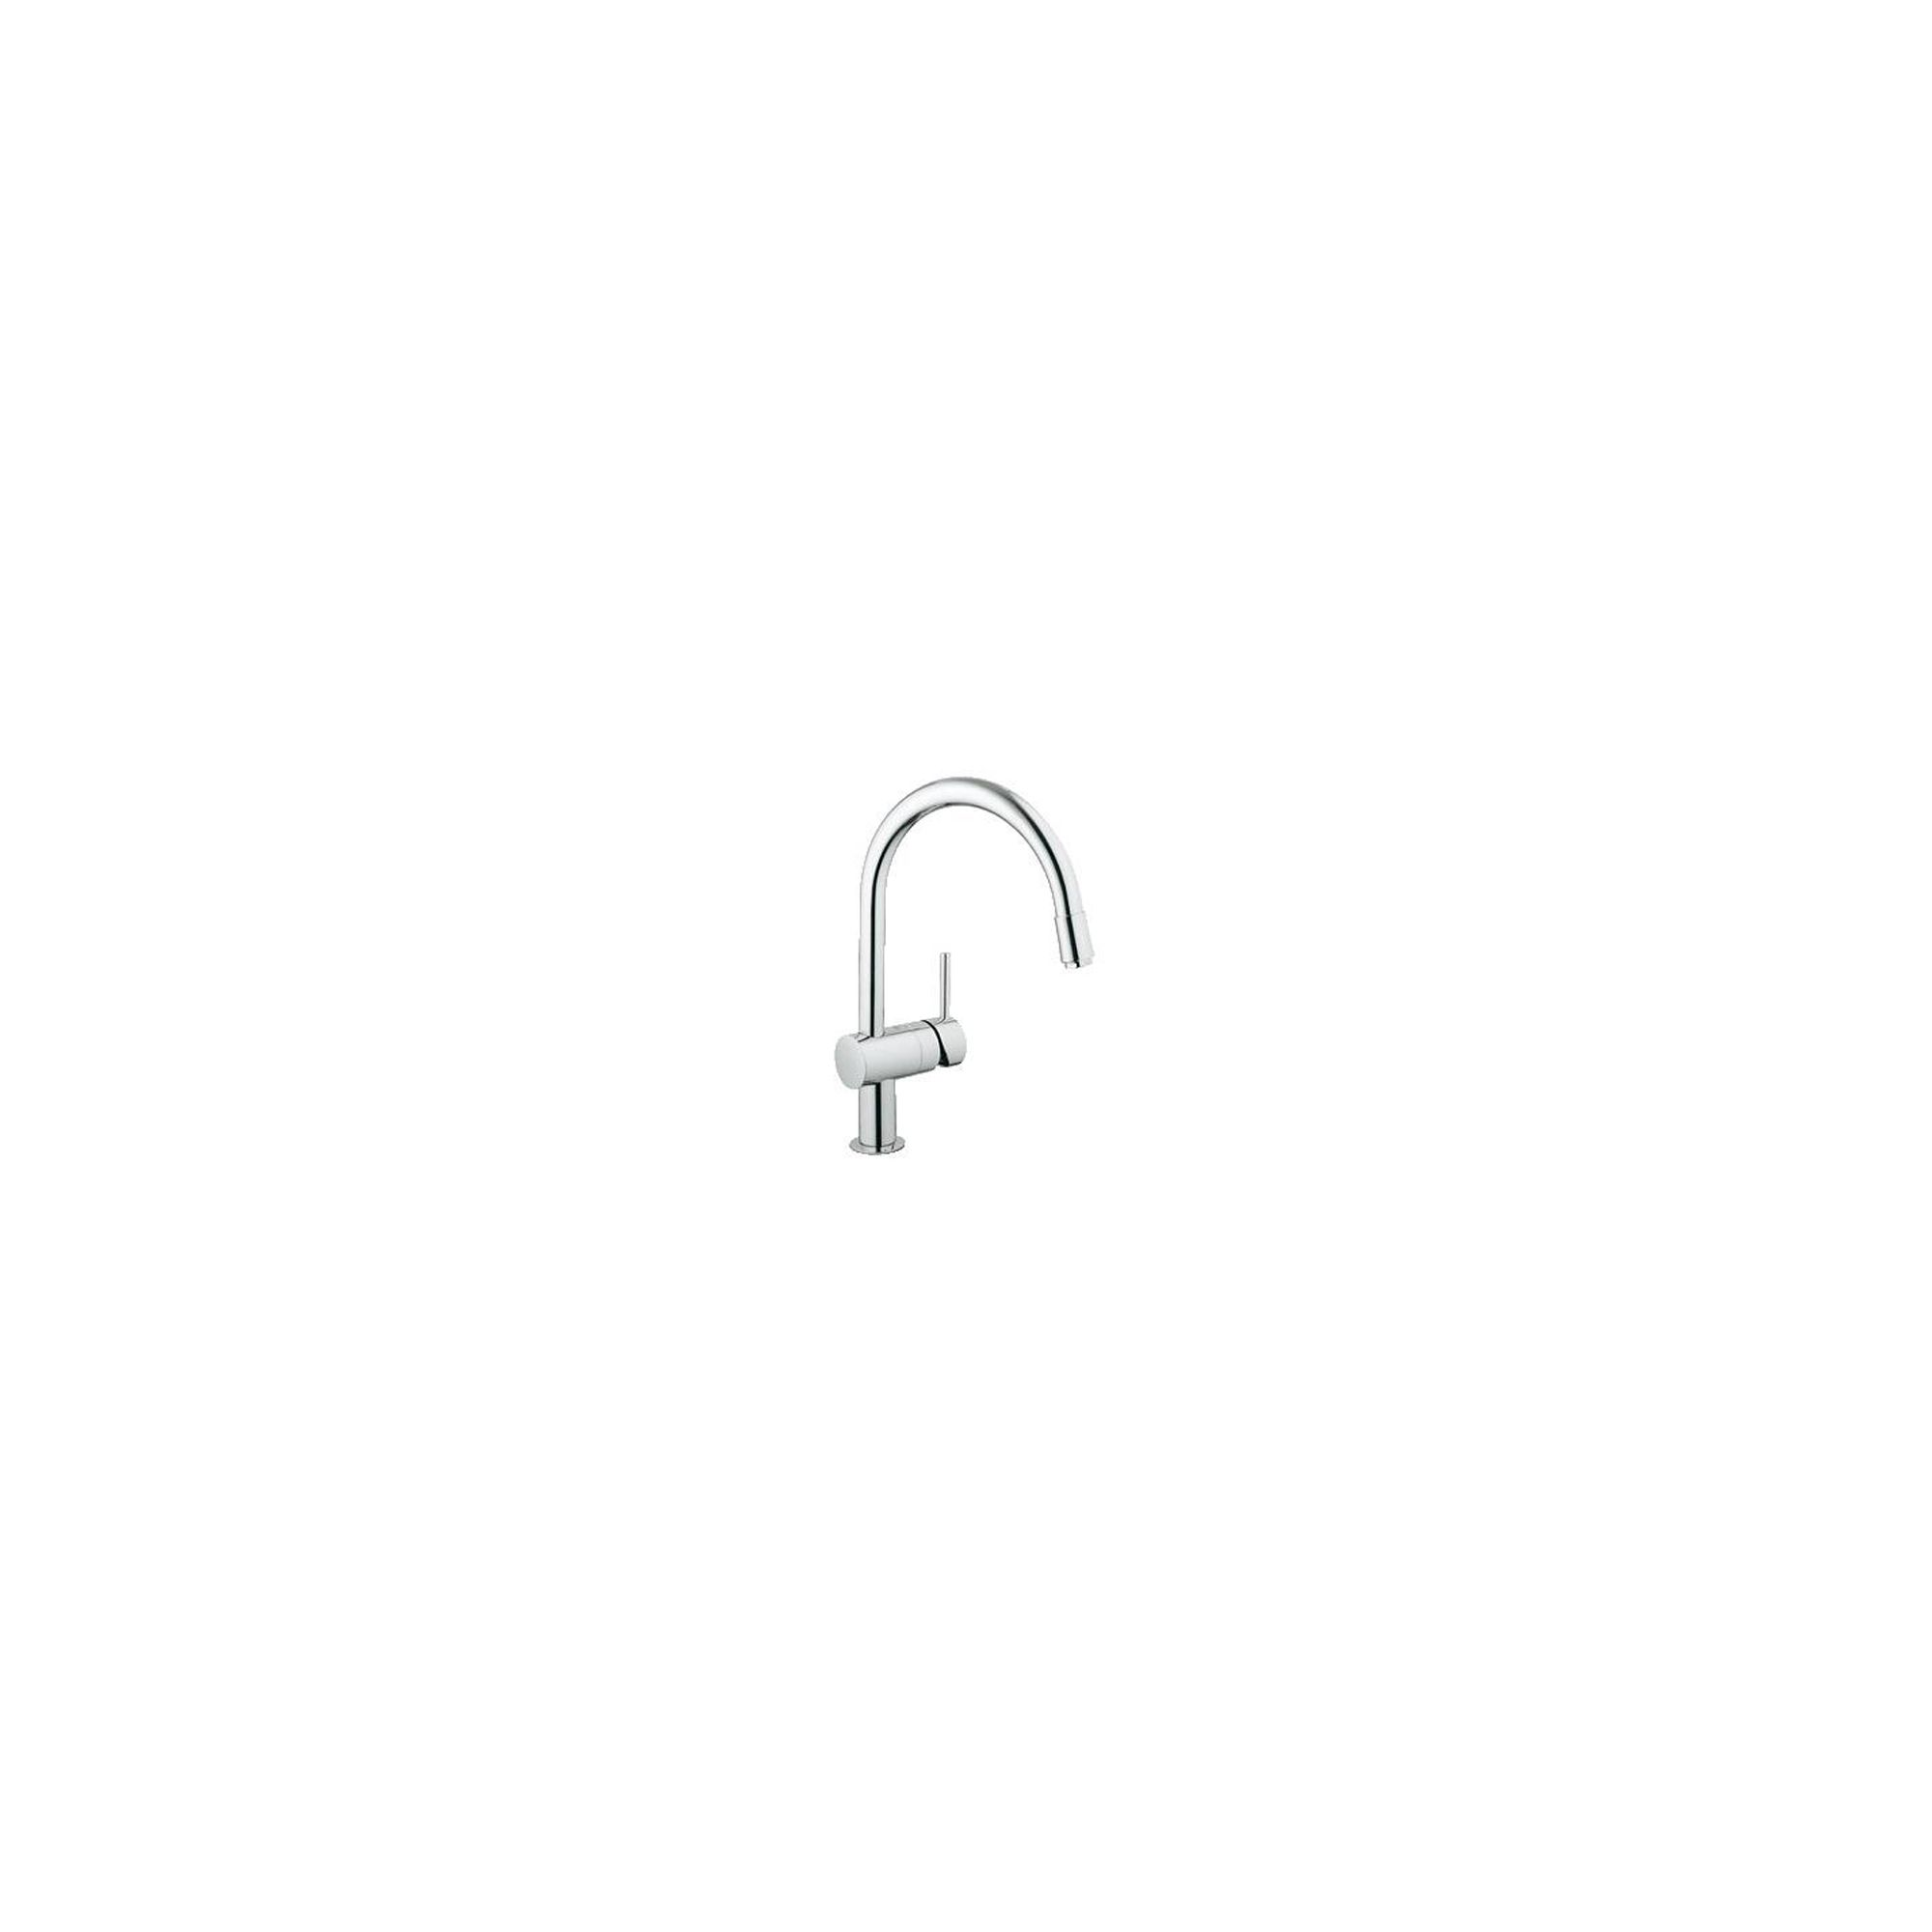 Grohe Minta Mono Sink Mixer Tap, Pull-Out C-Spout, Single Handle, Chrome at Tesco Direct